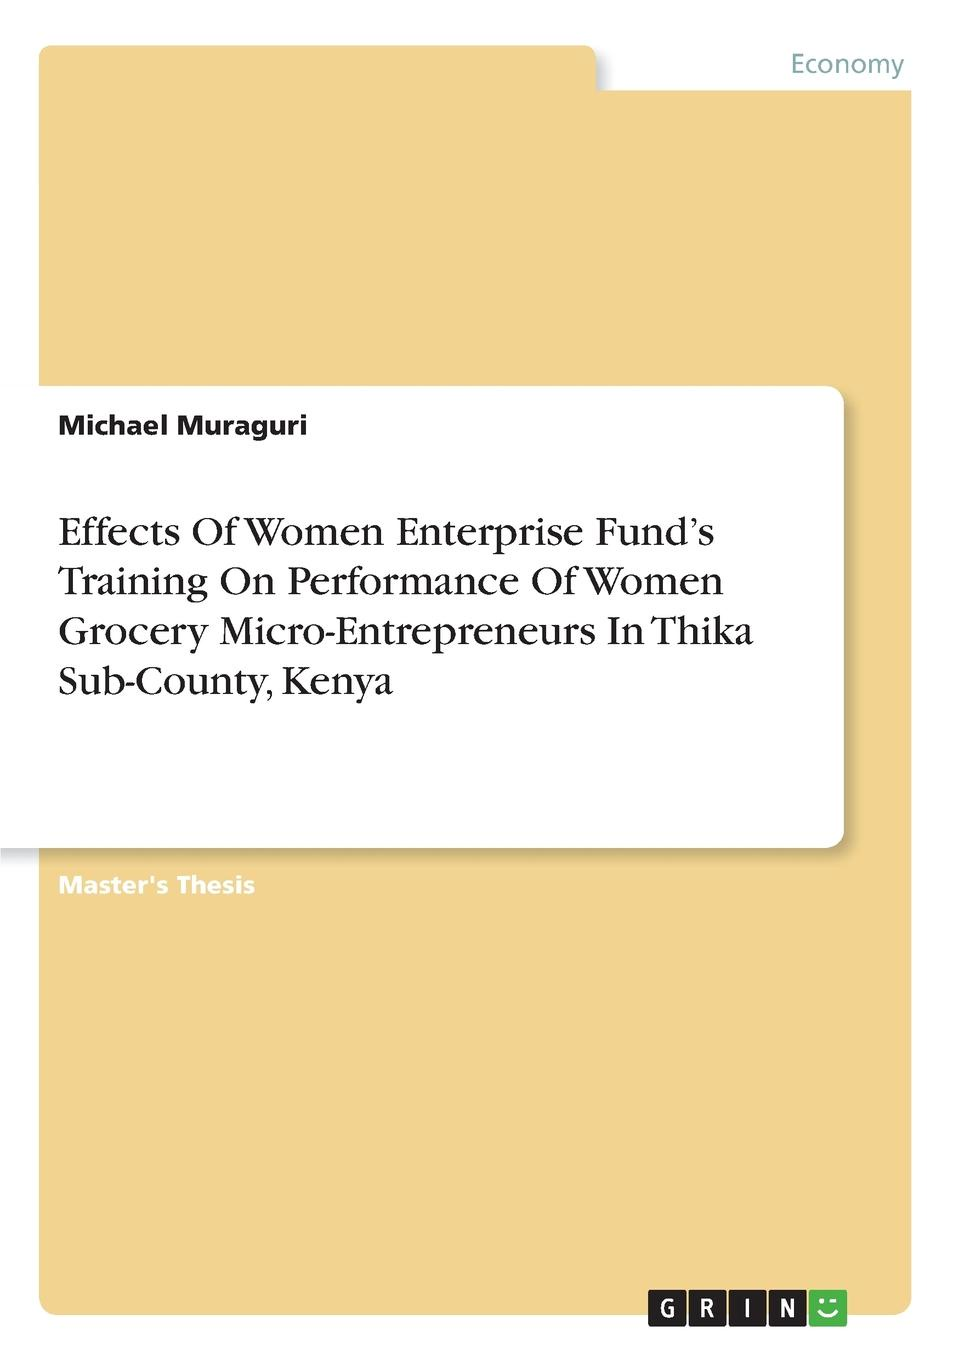 Michael Muraguri Effects Of Women Enterprise Fund.s Training On Performance Of Women Grocery Micro-Entrepreneurs In Thika Sub-County, Kenya micro perspectives on poverty alleviation in kenya